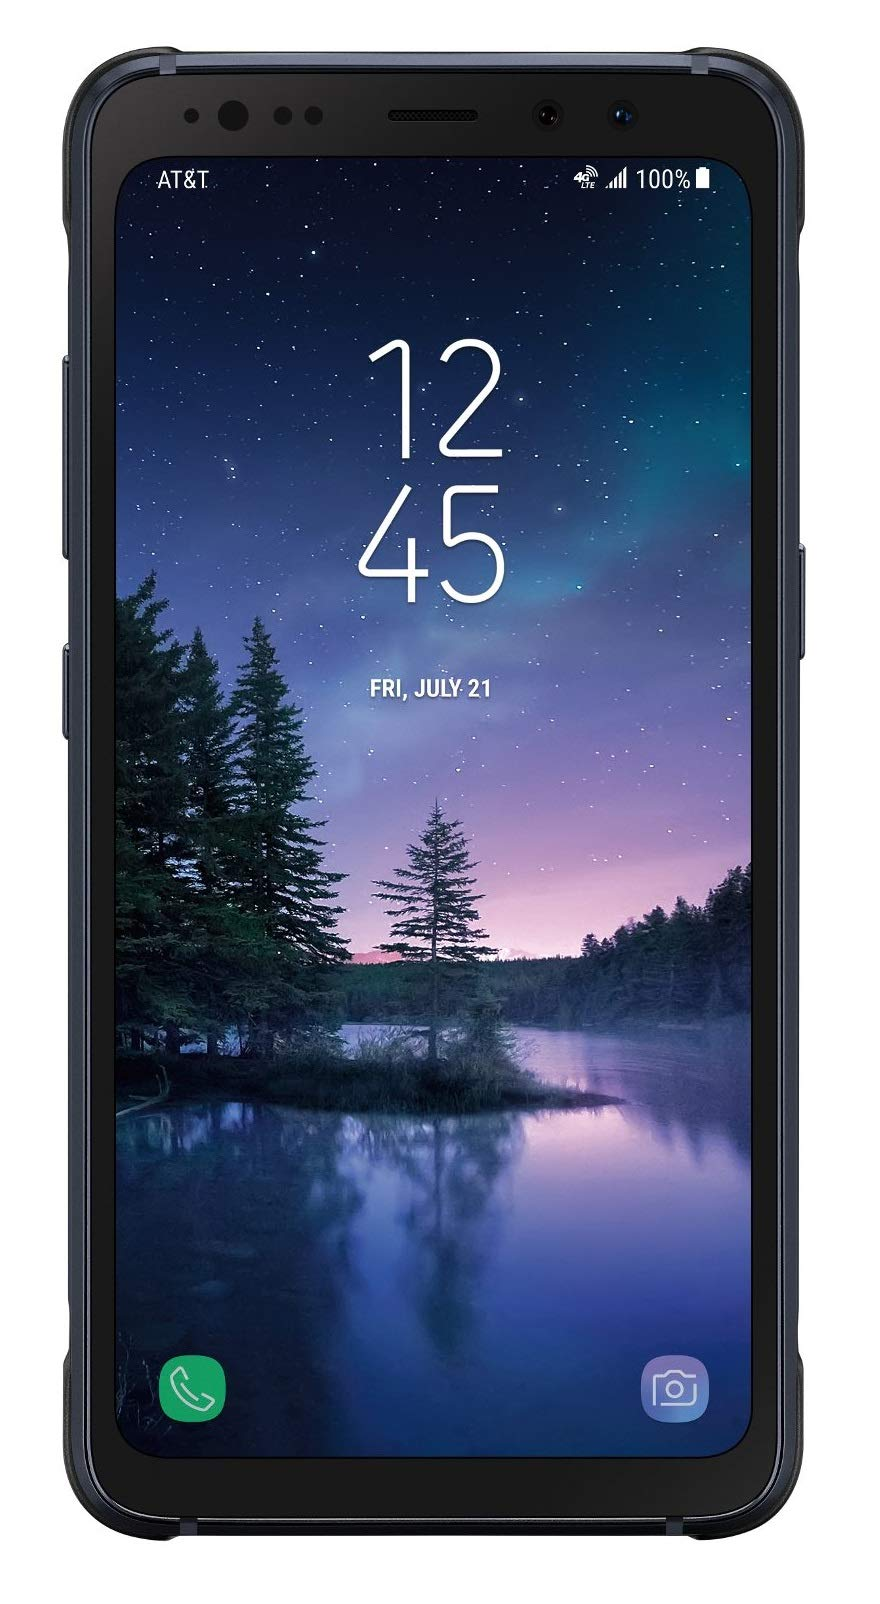 Samsung Galaxy S8 ACTIVE Durable & Water Resistant Smartphone for AT&T - Meteor Gray (Renewed)